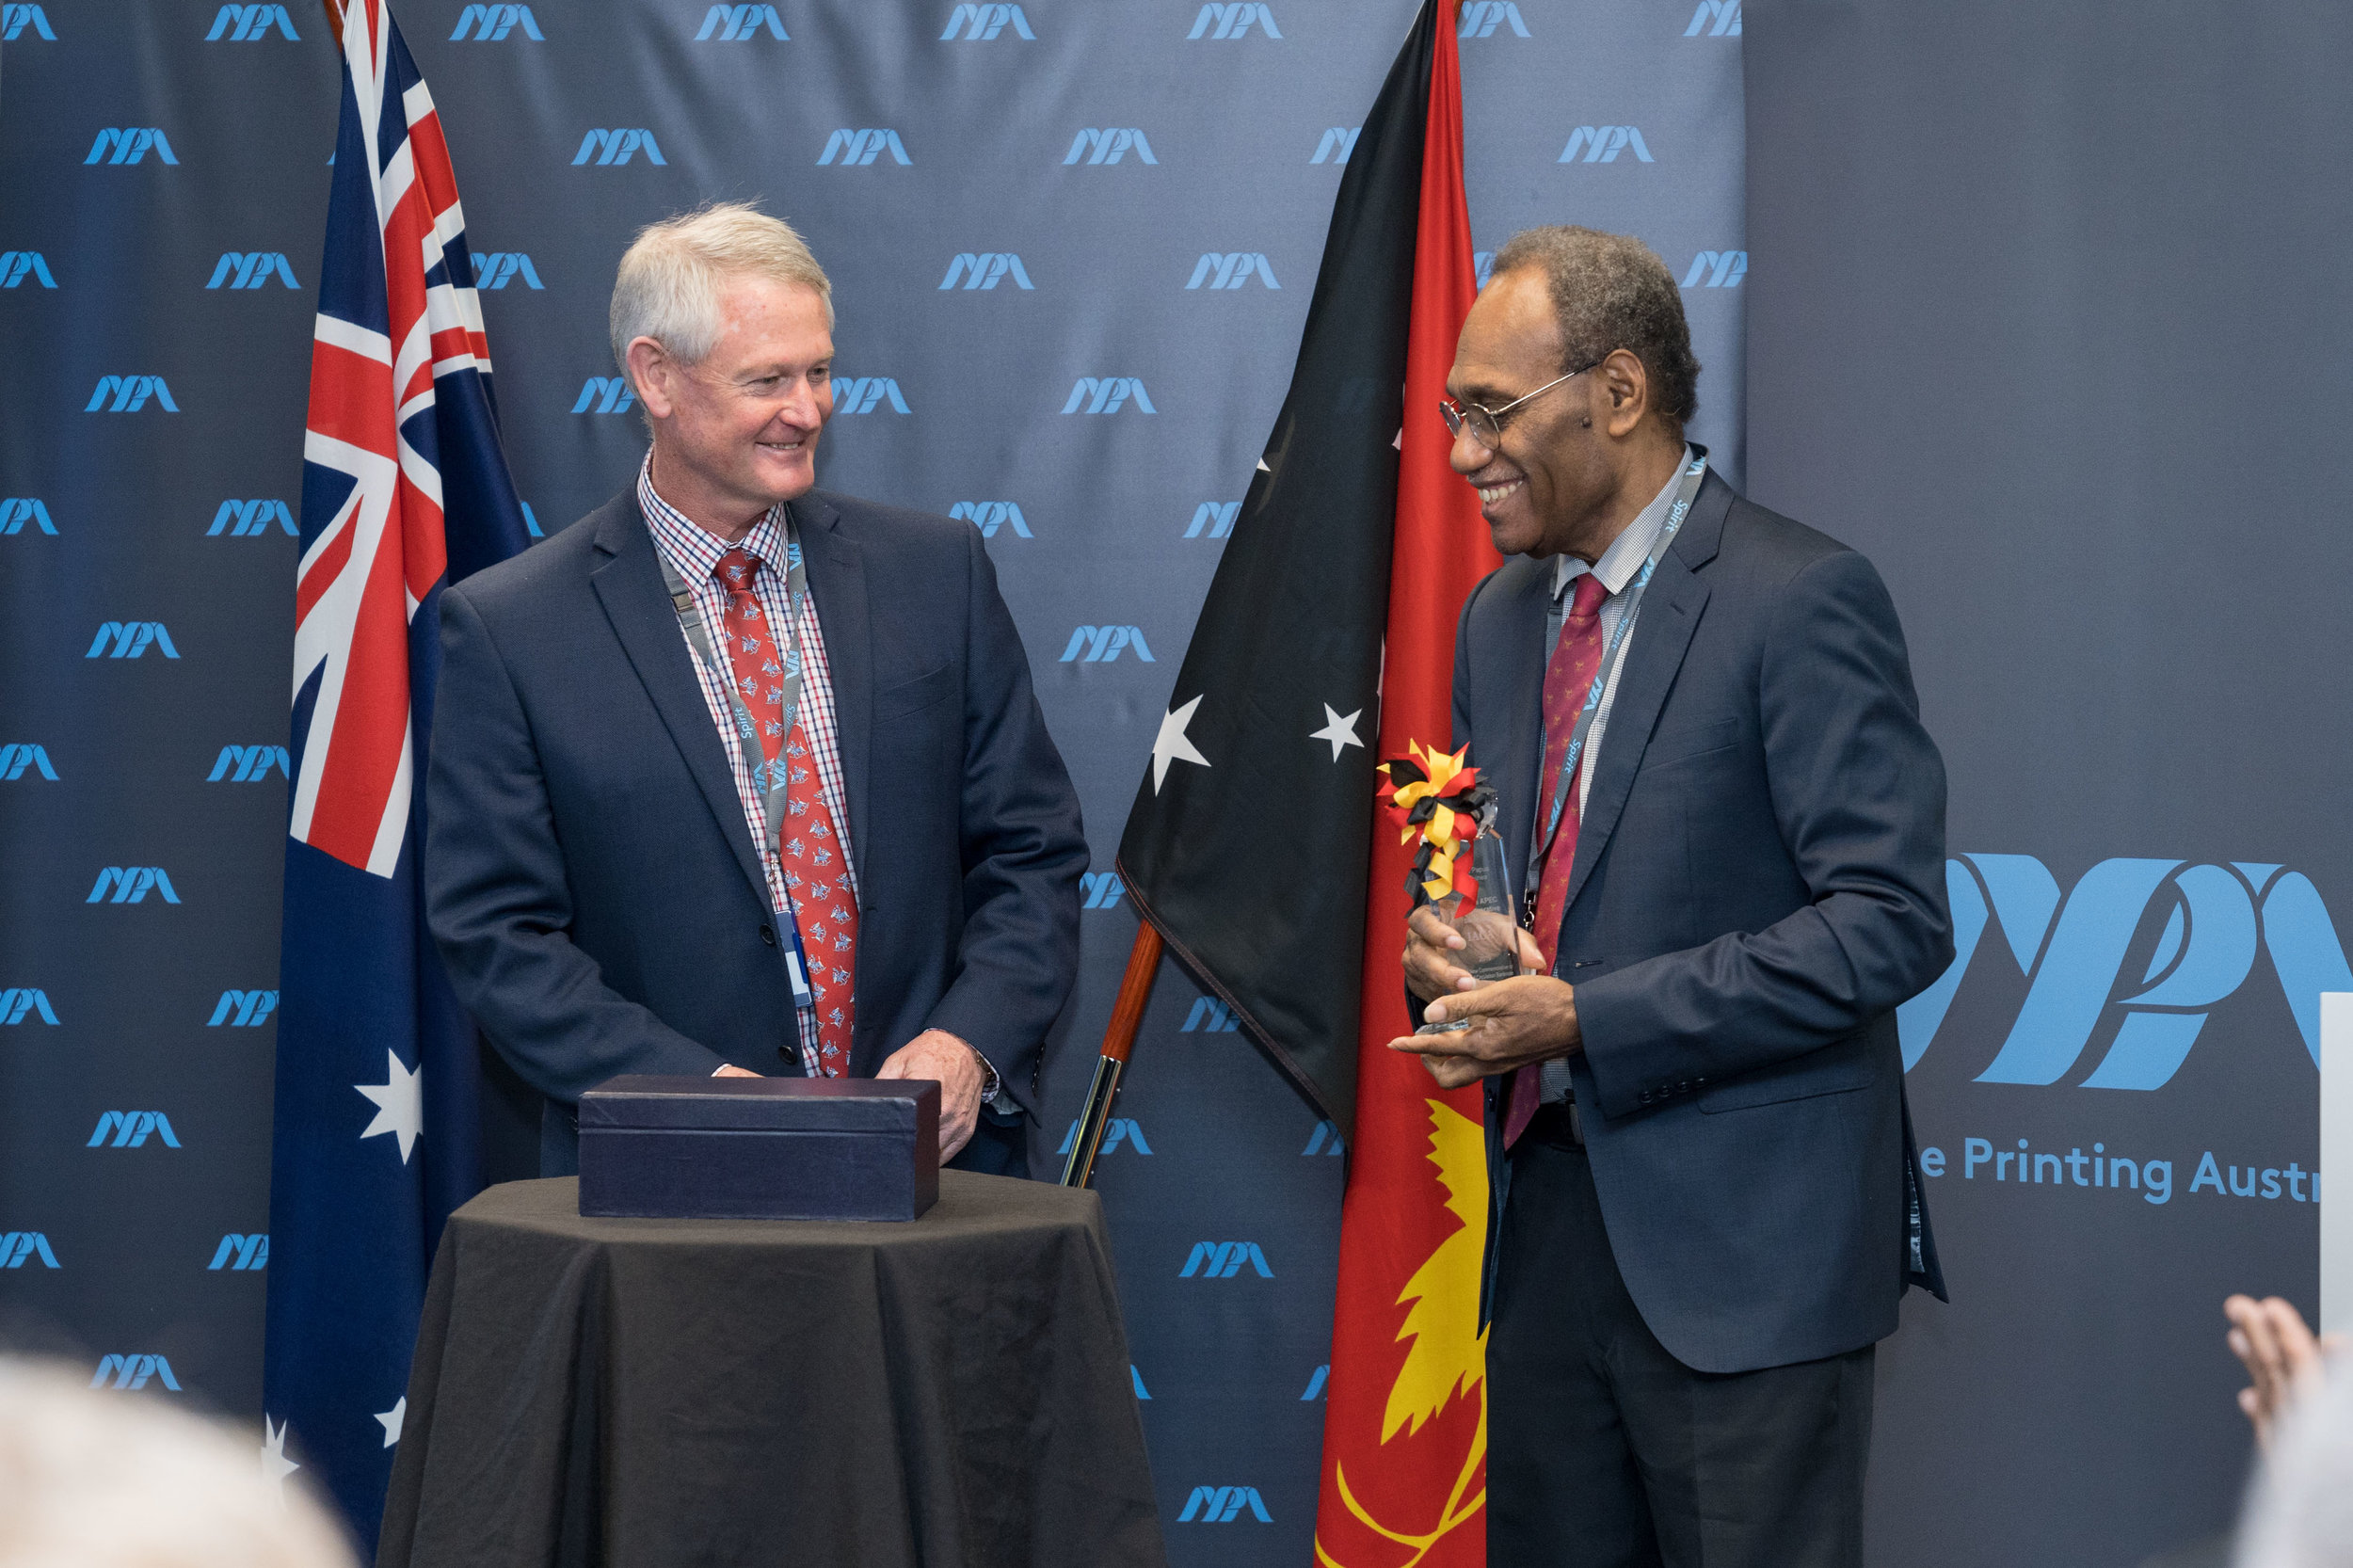 NPA CEO Malcolm McDowell officially presents the IACA Award for Excellence to BPNG Deputy Governor Joe Teria after the nation's new K100 note was recognised as a Finalist for the Best New Commemorative or Limited Circulation Banknote